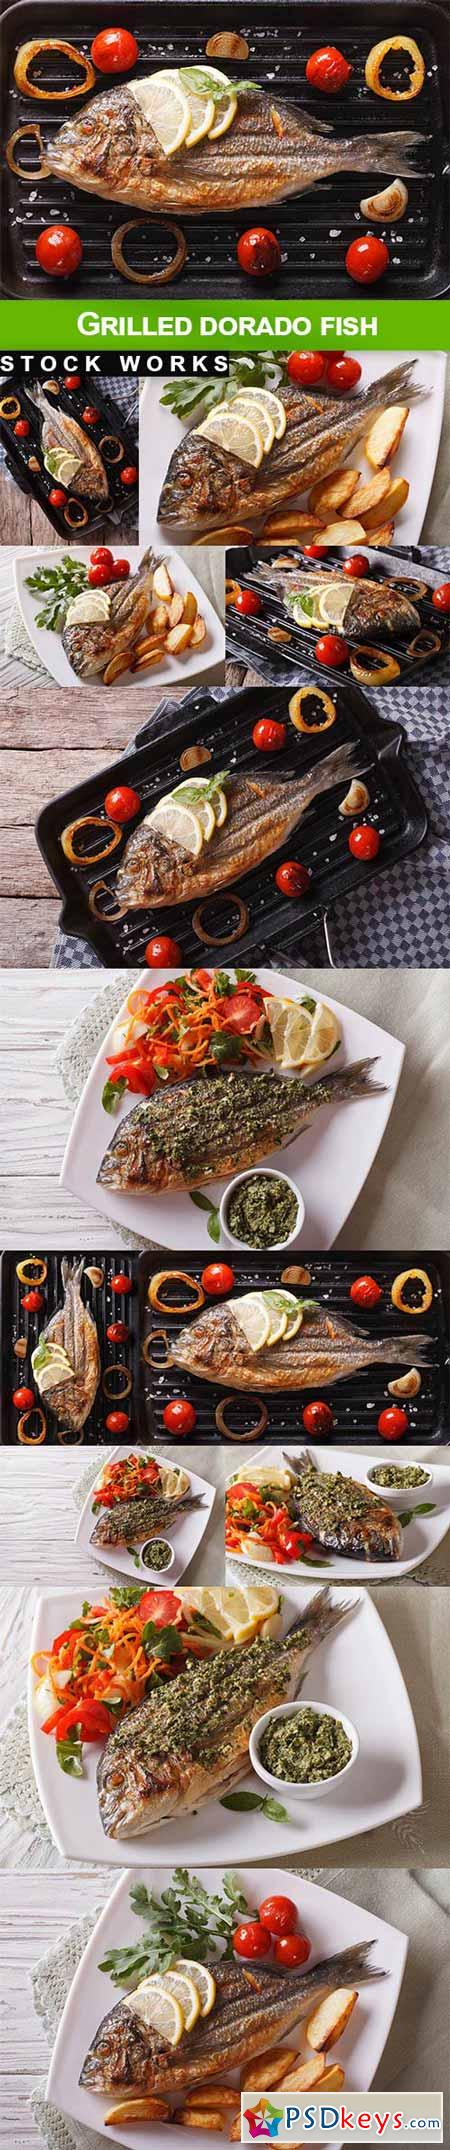 Grilled dorado fish - 12 UHQ JPEG